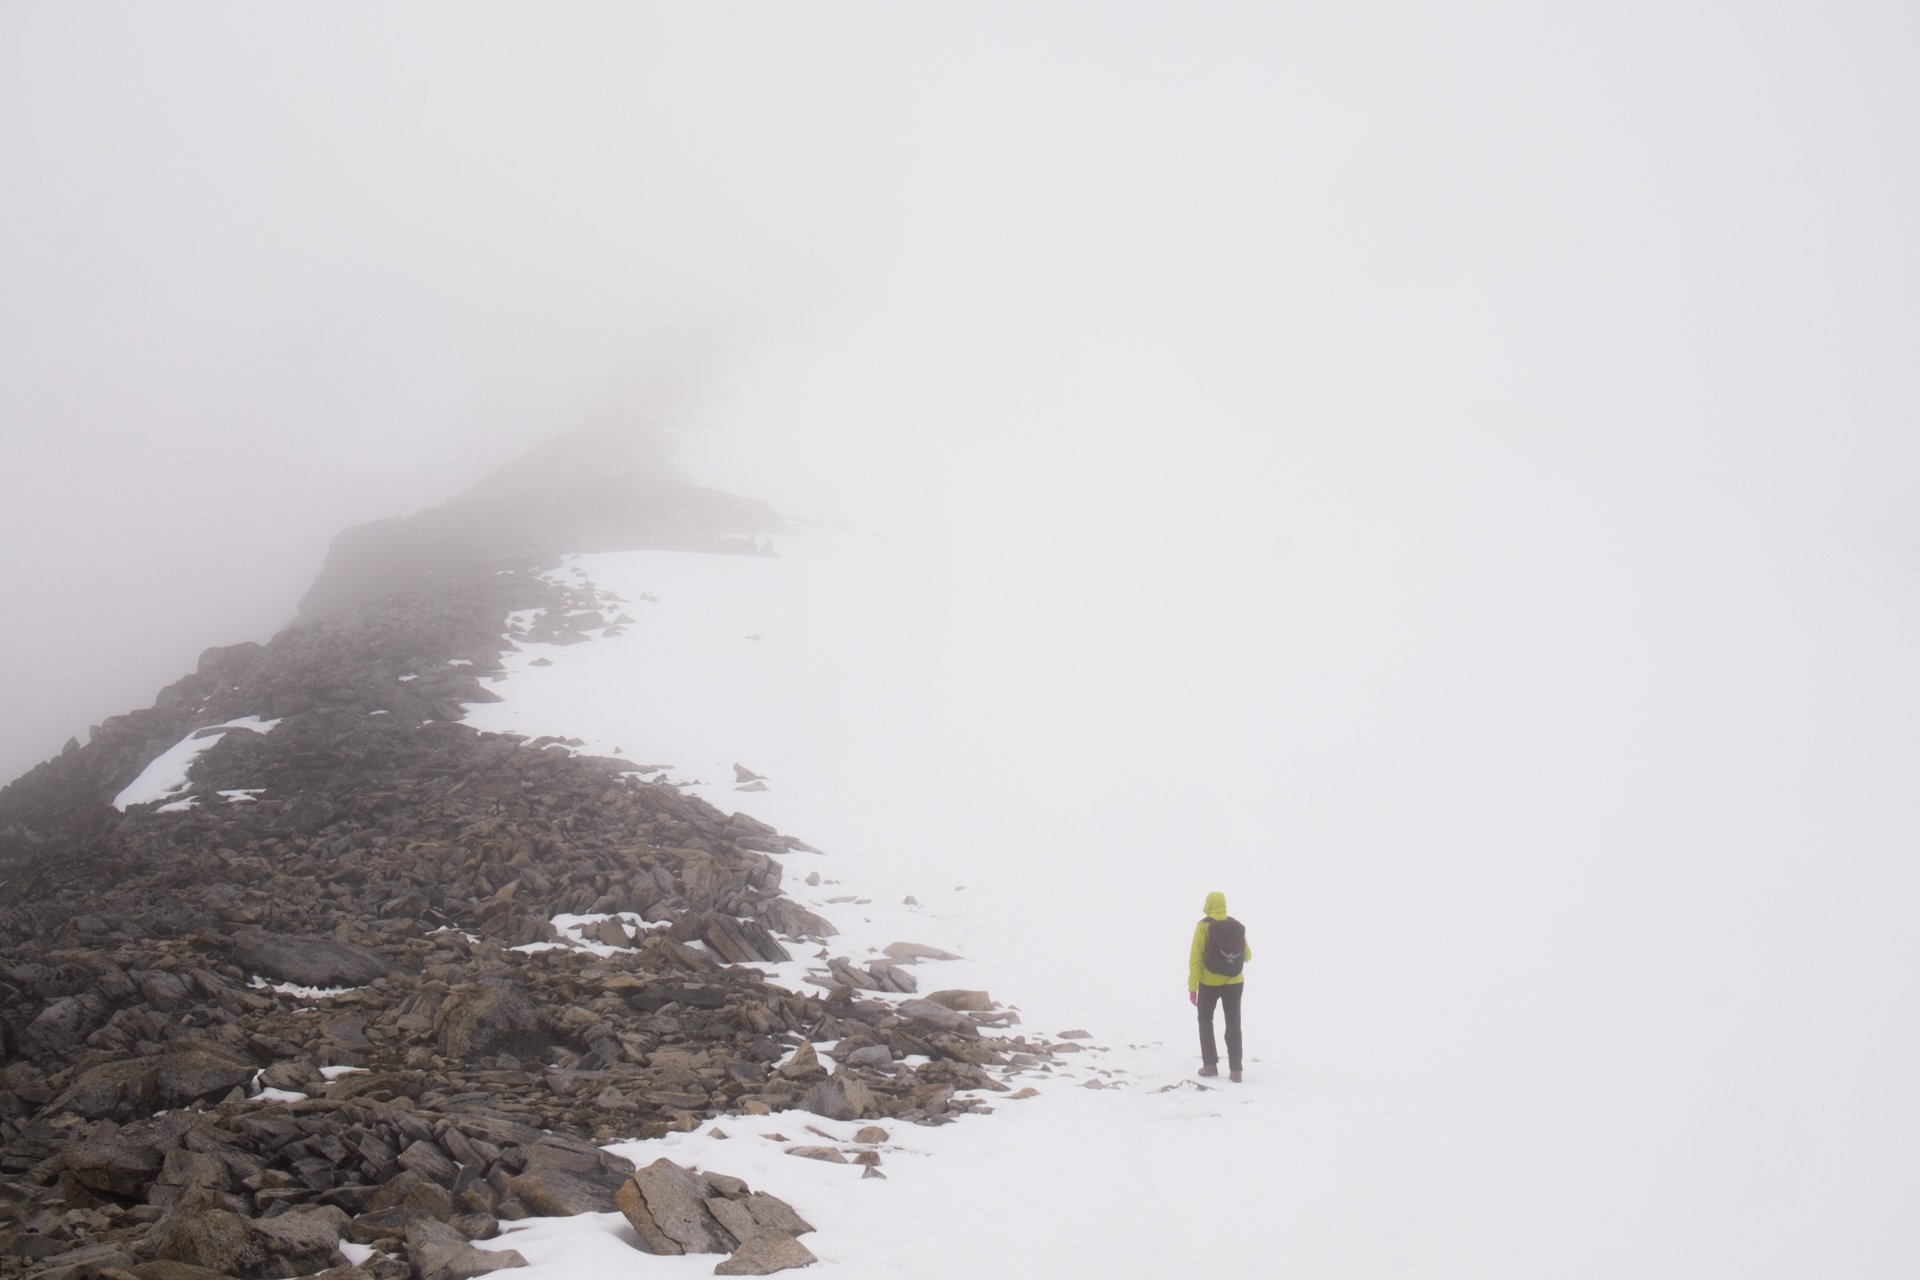 In Jotunheim the clouds can quickly roll in so be careful when walking on the ridge on the midway up.